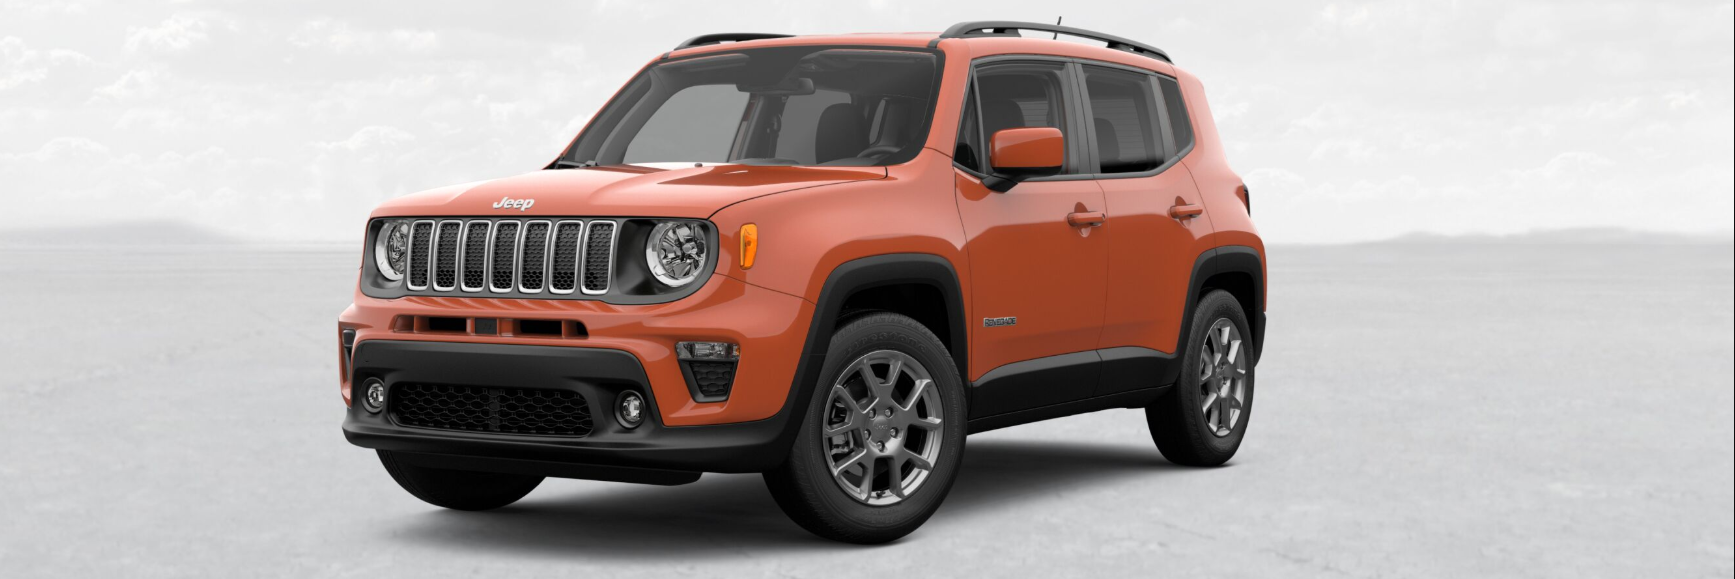 55 A 2019 Jeep Exterior Colors Price Design And Review